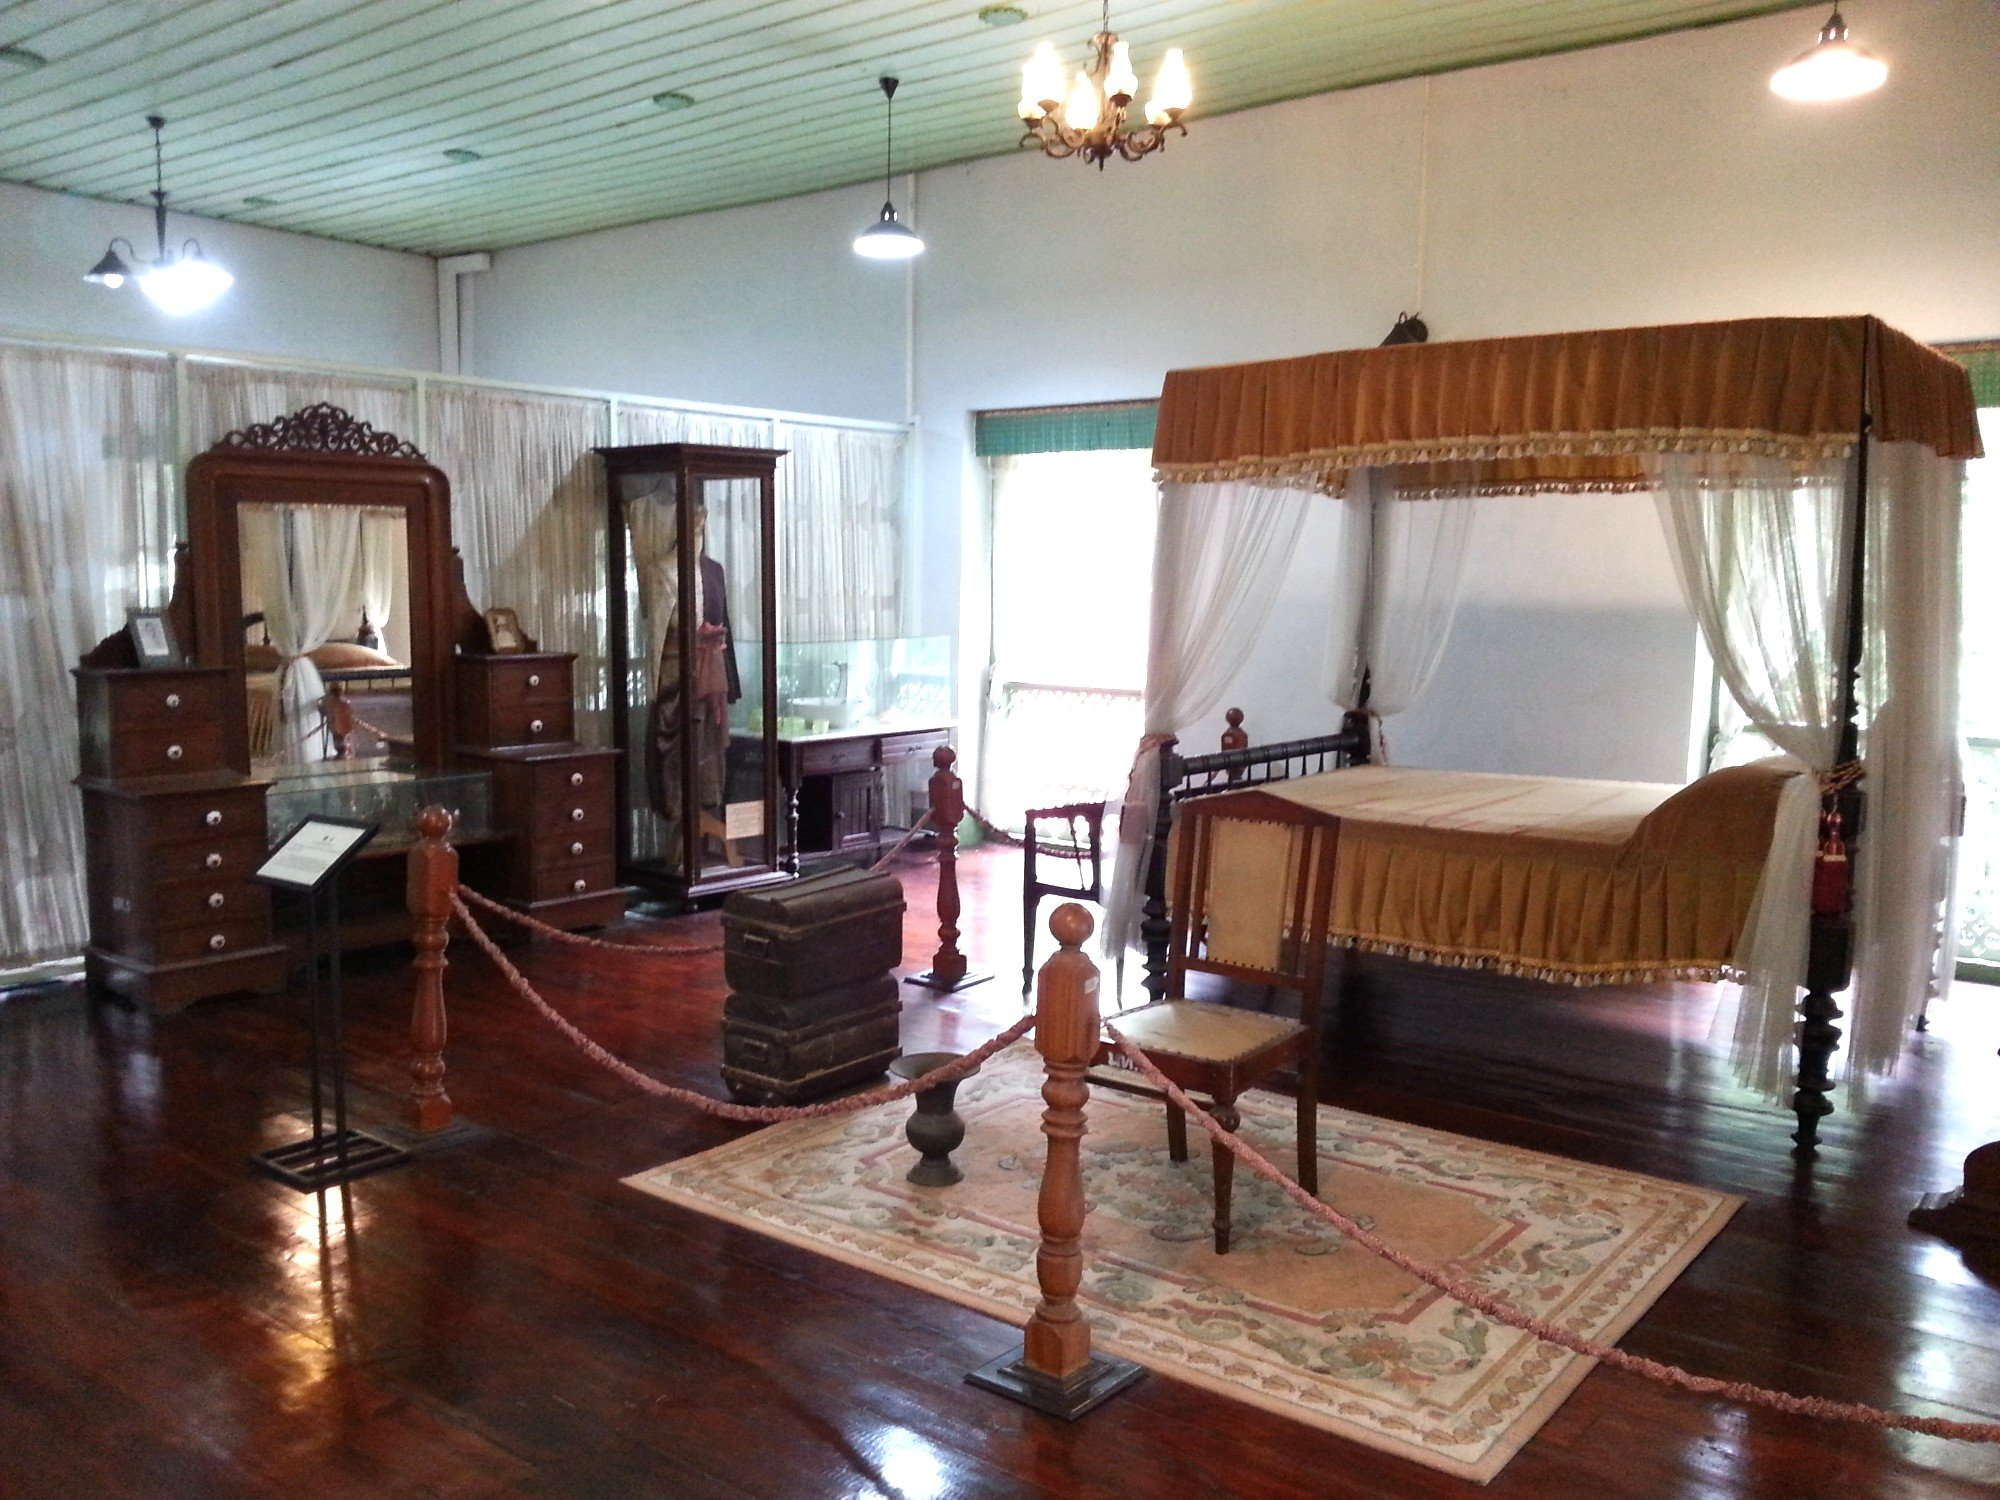 Bedroom of the Chao Luang